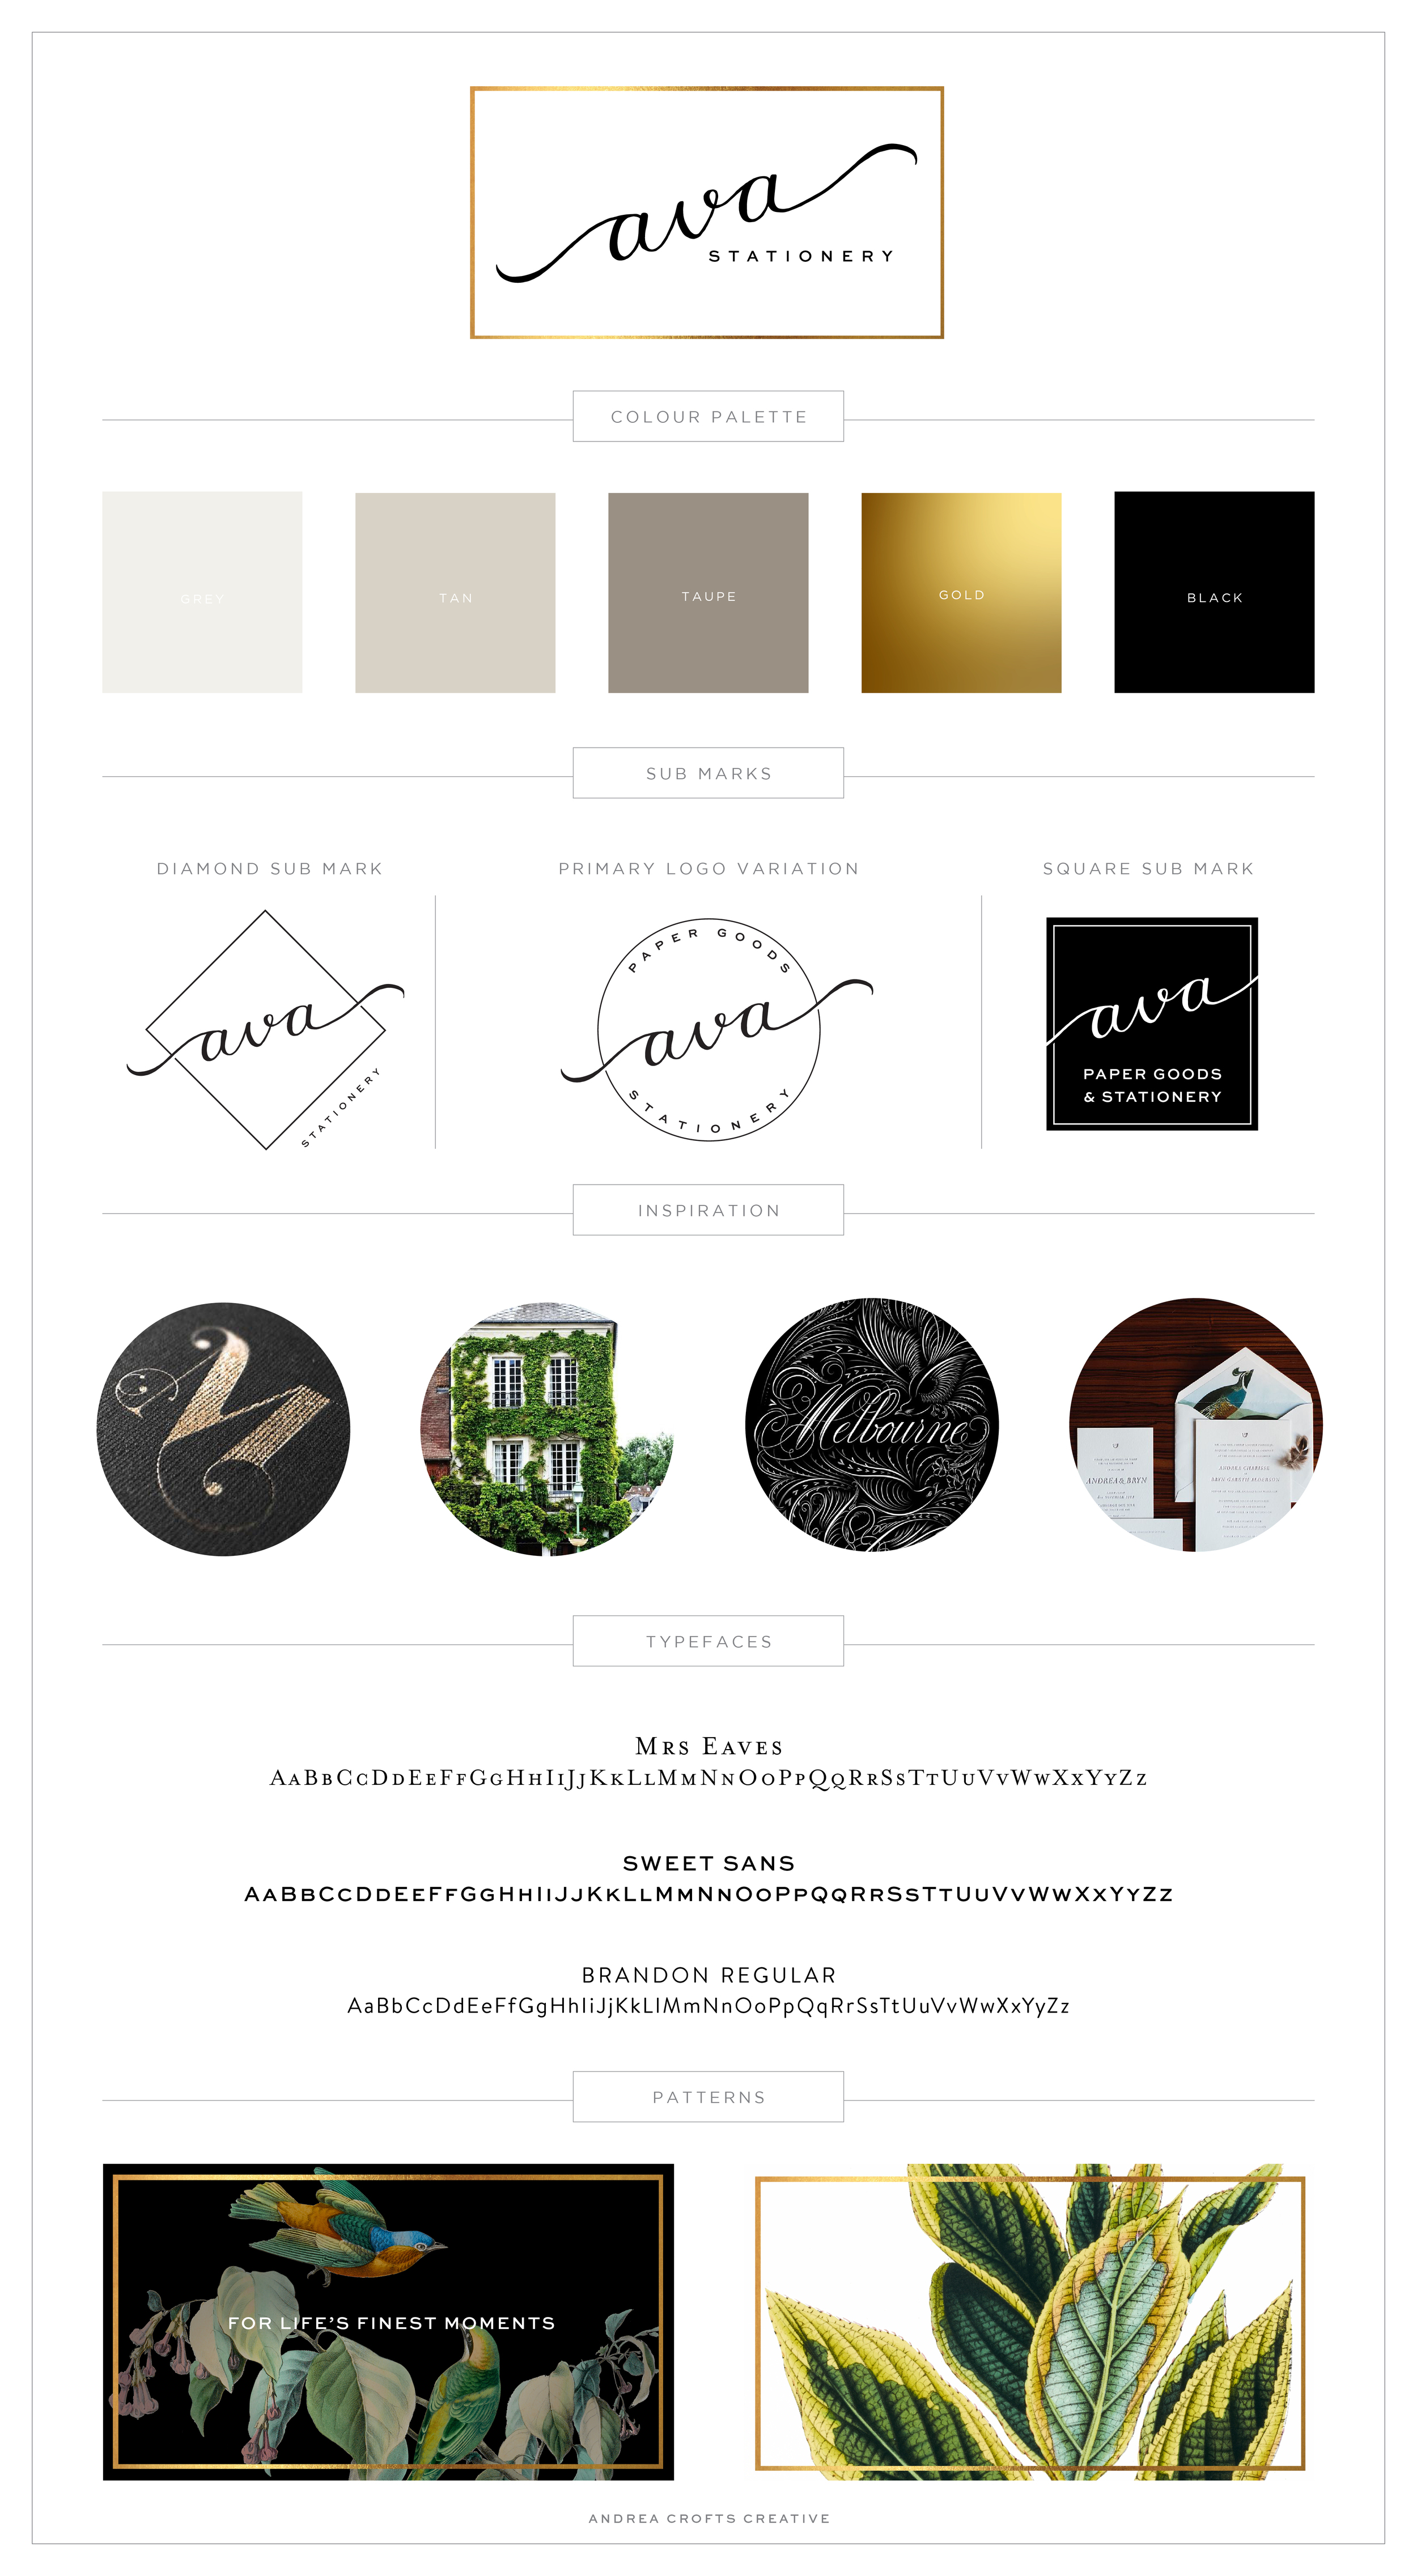 Brand Board - Ava Stationery by Andrea Crofts Creative